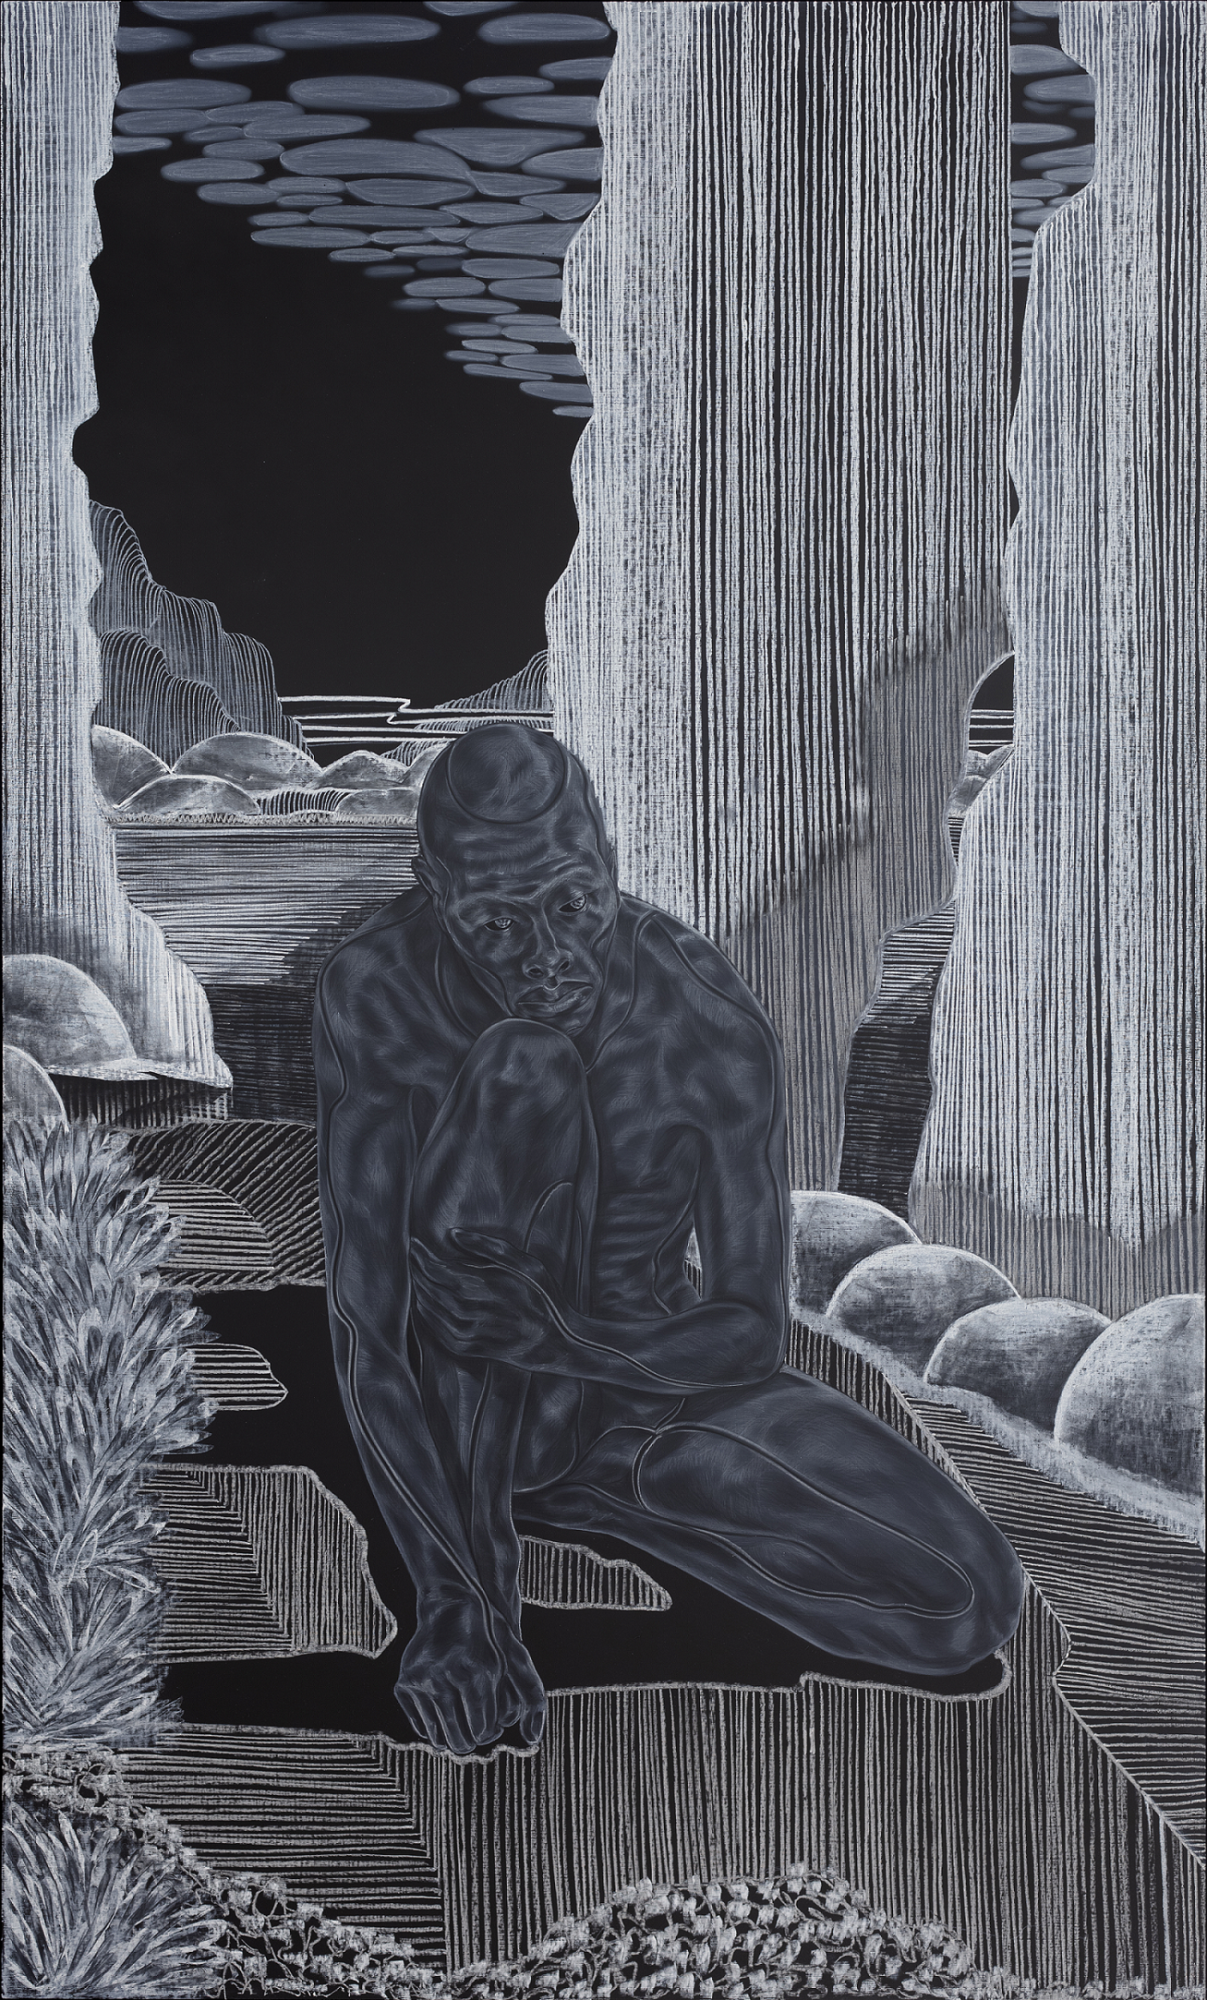 Toyin Ojih Odutola 'Introductions: Early Embodiment' from A Countervailing Theory', 2019, via barbican.org.uk